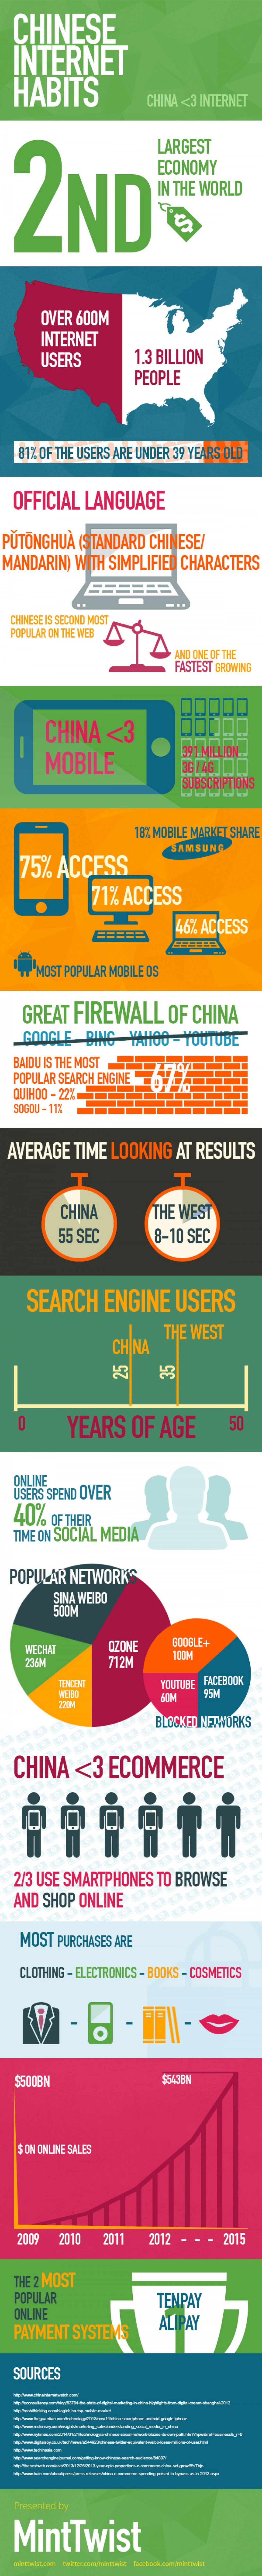 Digital China Infographic